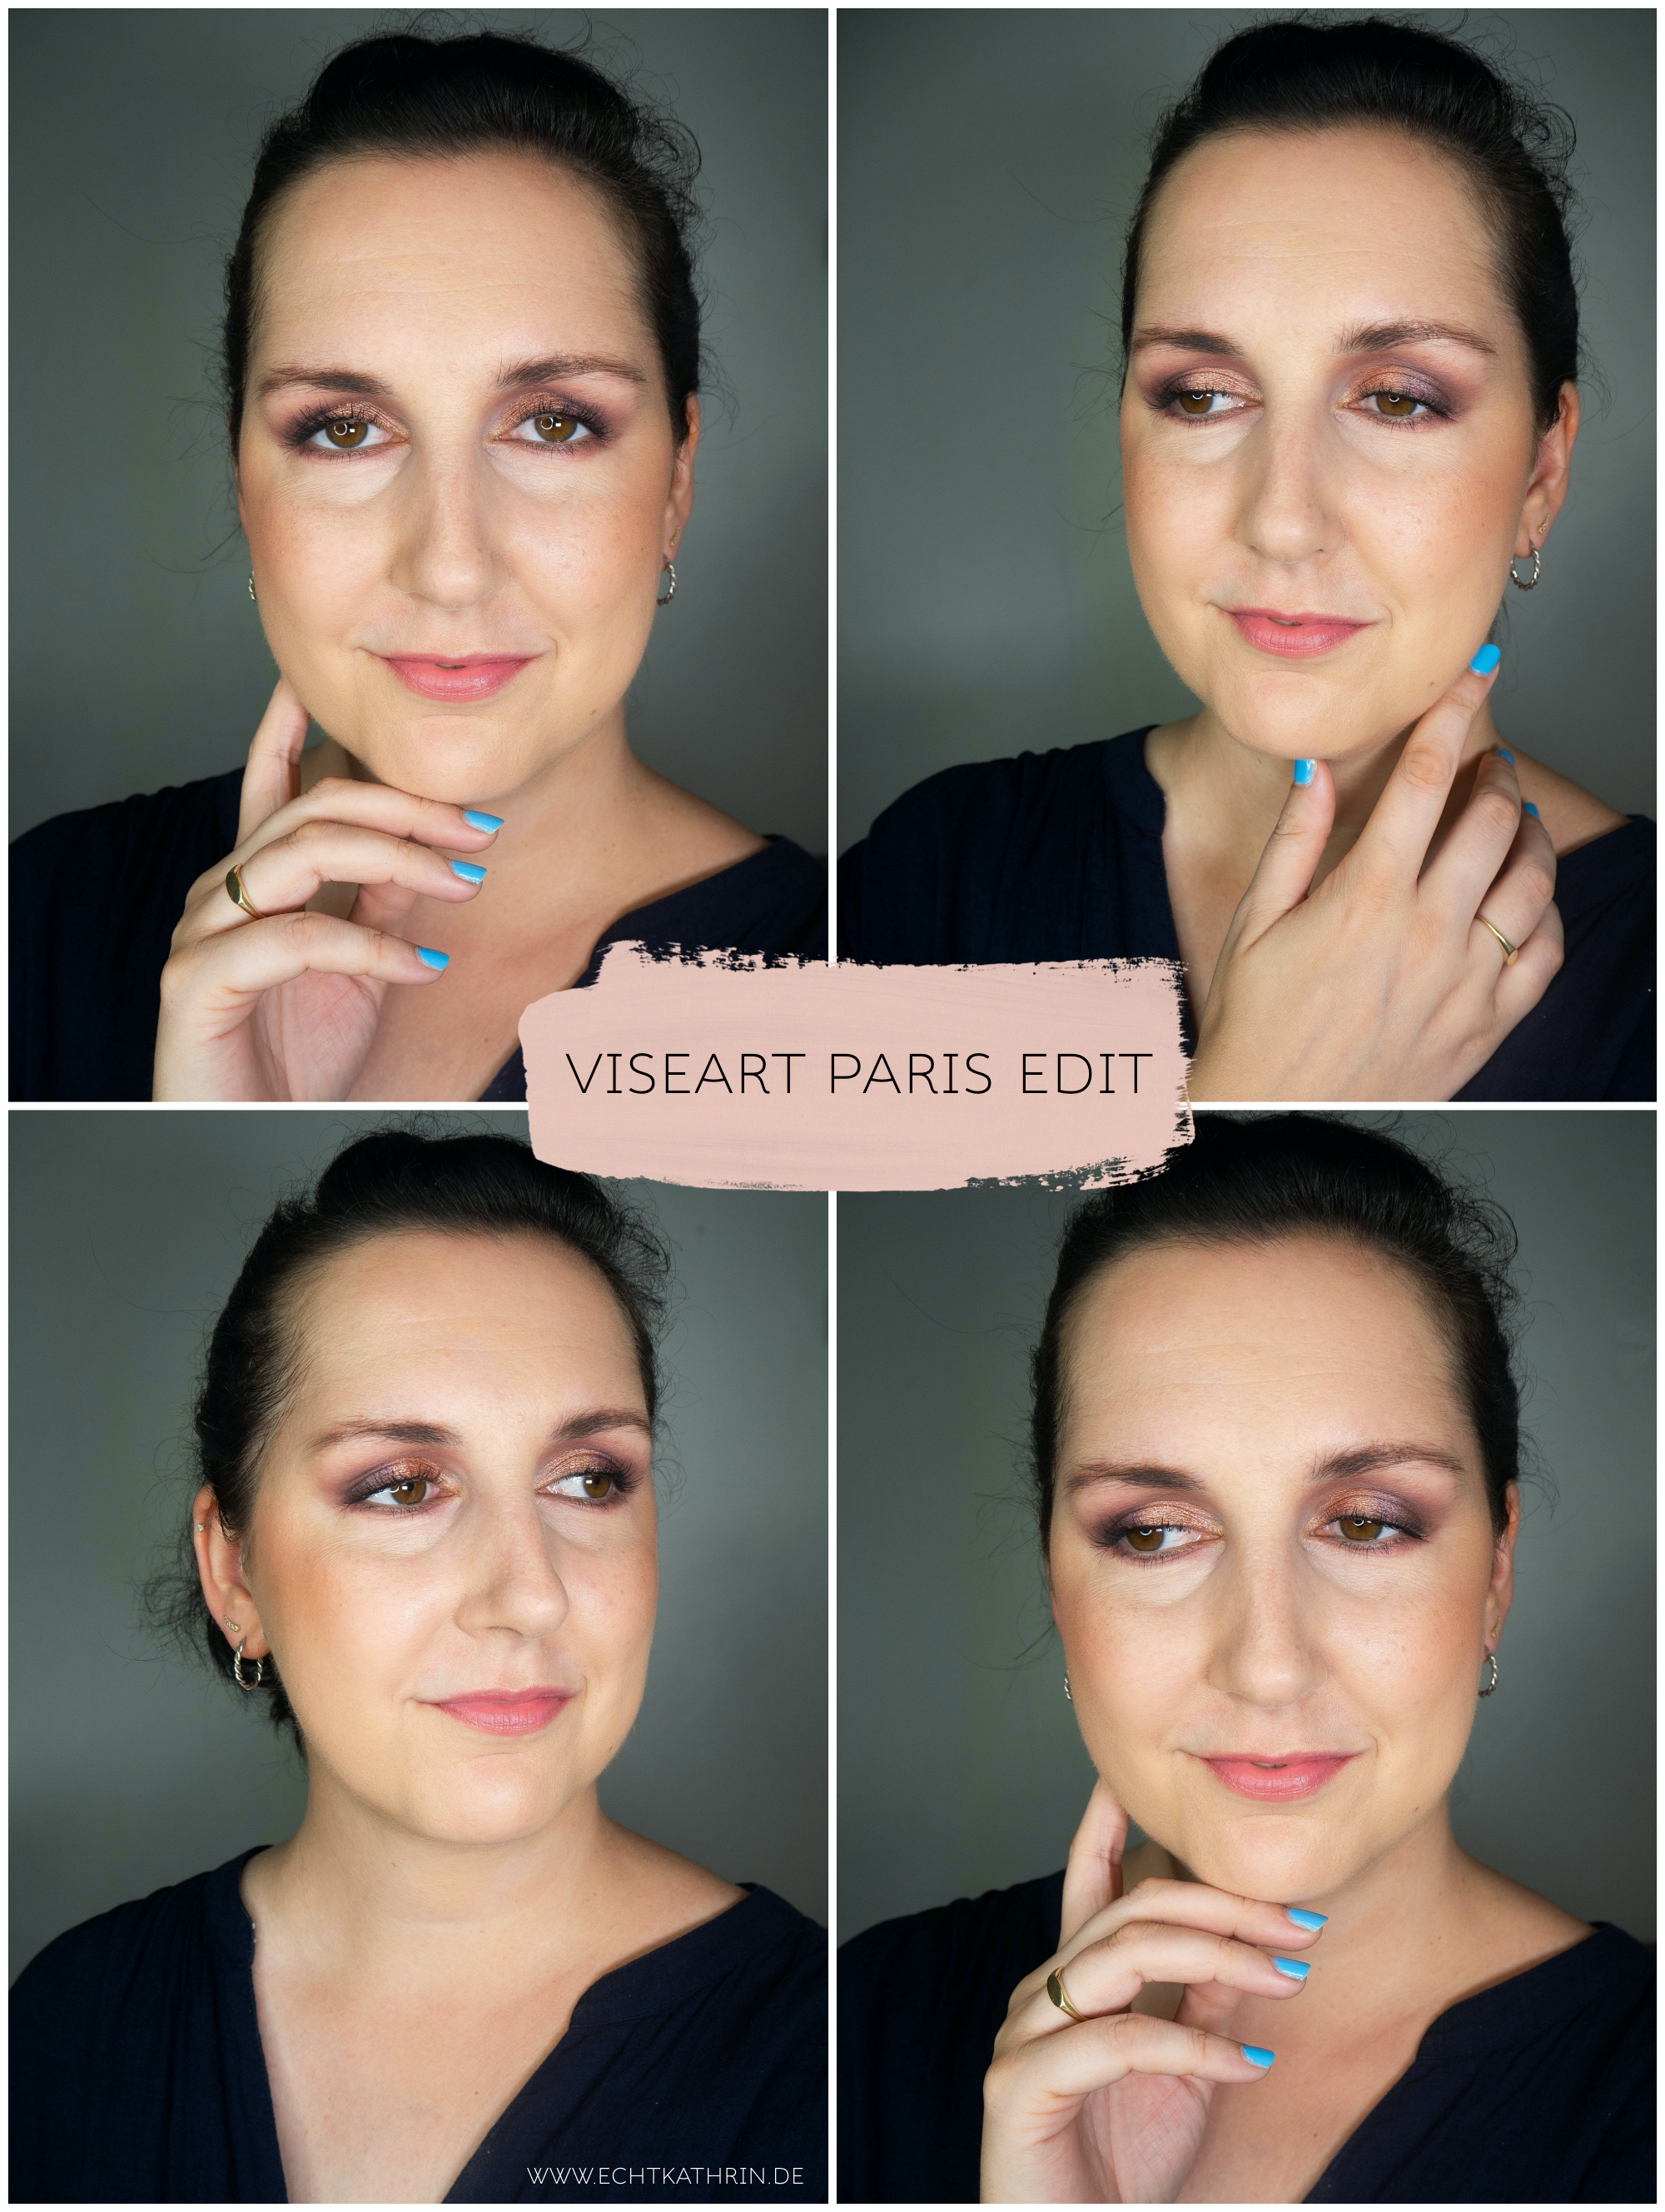 Viseart Paris Edit Look echtkathrin